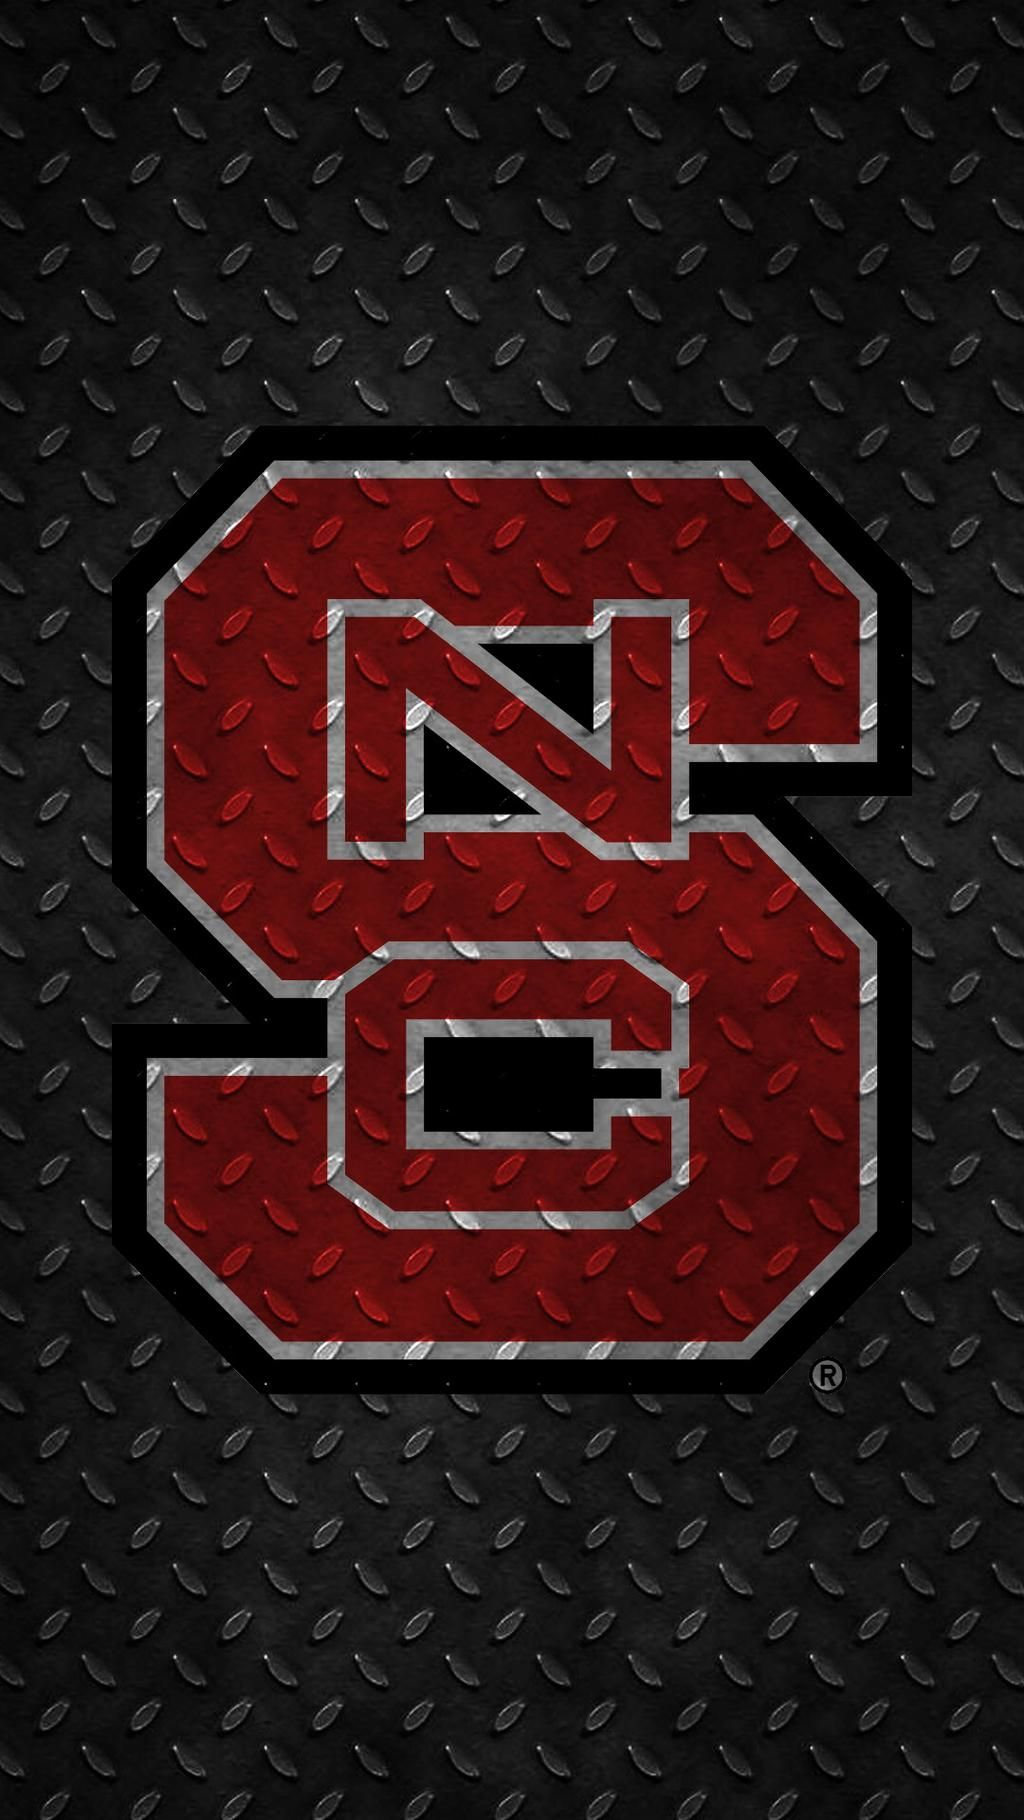 Best Car Wallpapers For Iphone Download Nc State Wolfpack Wallpaper Gallery